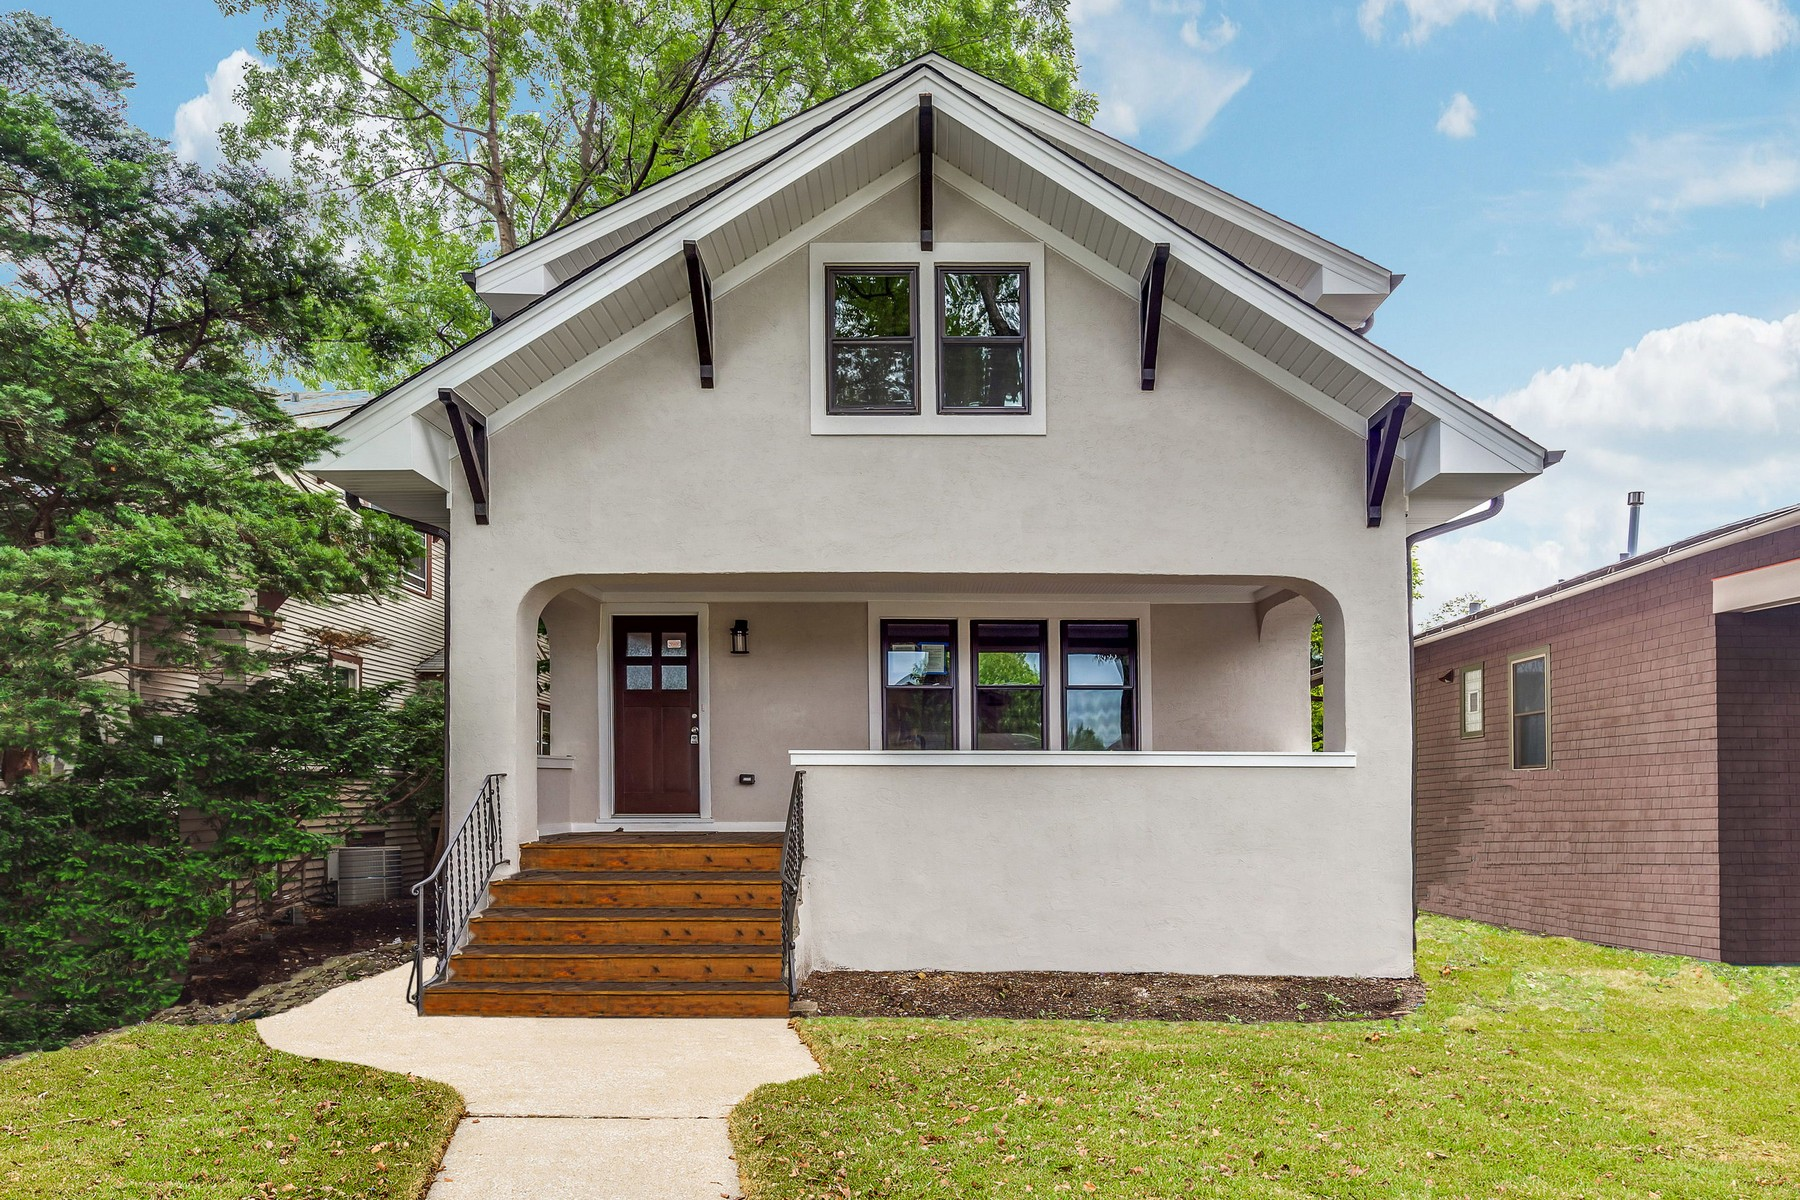 Single Family Home for Sale at Classic Stucco Bungalow 930 N Taylor Avenue Oak Park, Illinois 60302 United States